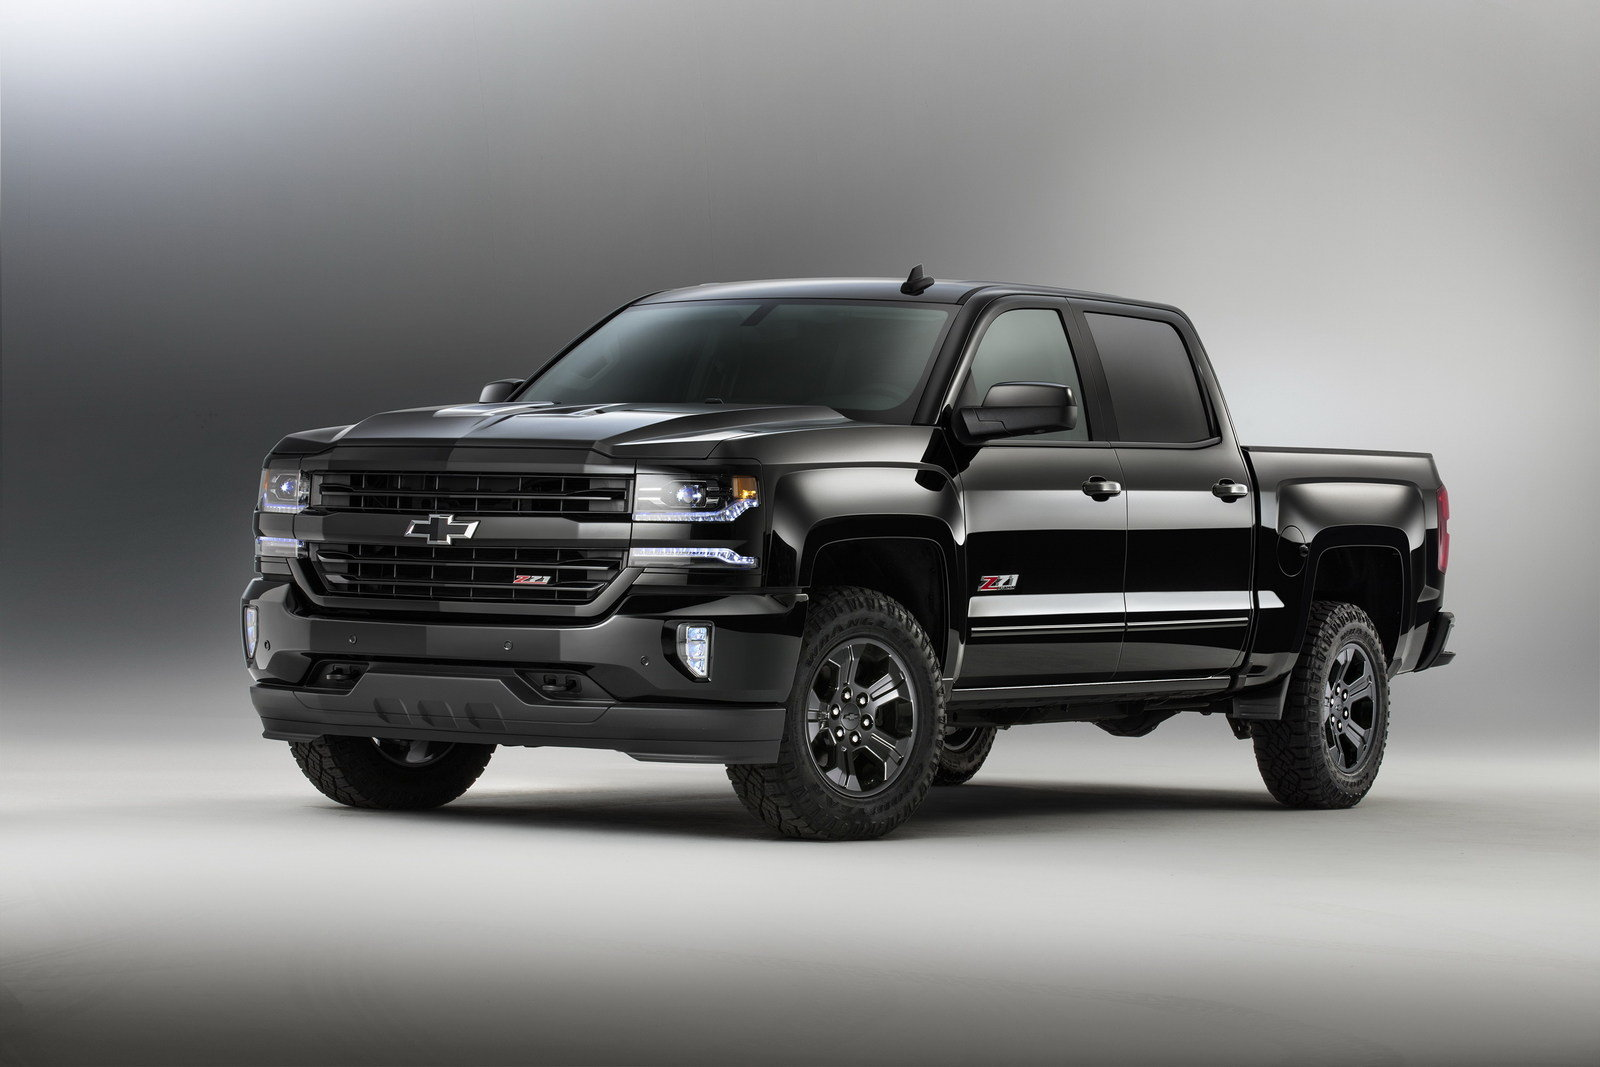 2016 chevrolet silverado 1500 z71 midnight special edition picture 664934 truck review top. Black Bedroom Furniture Sets. Home Design Ideas